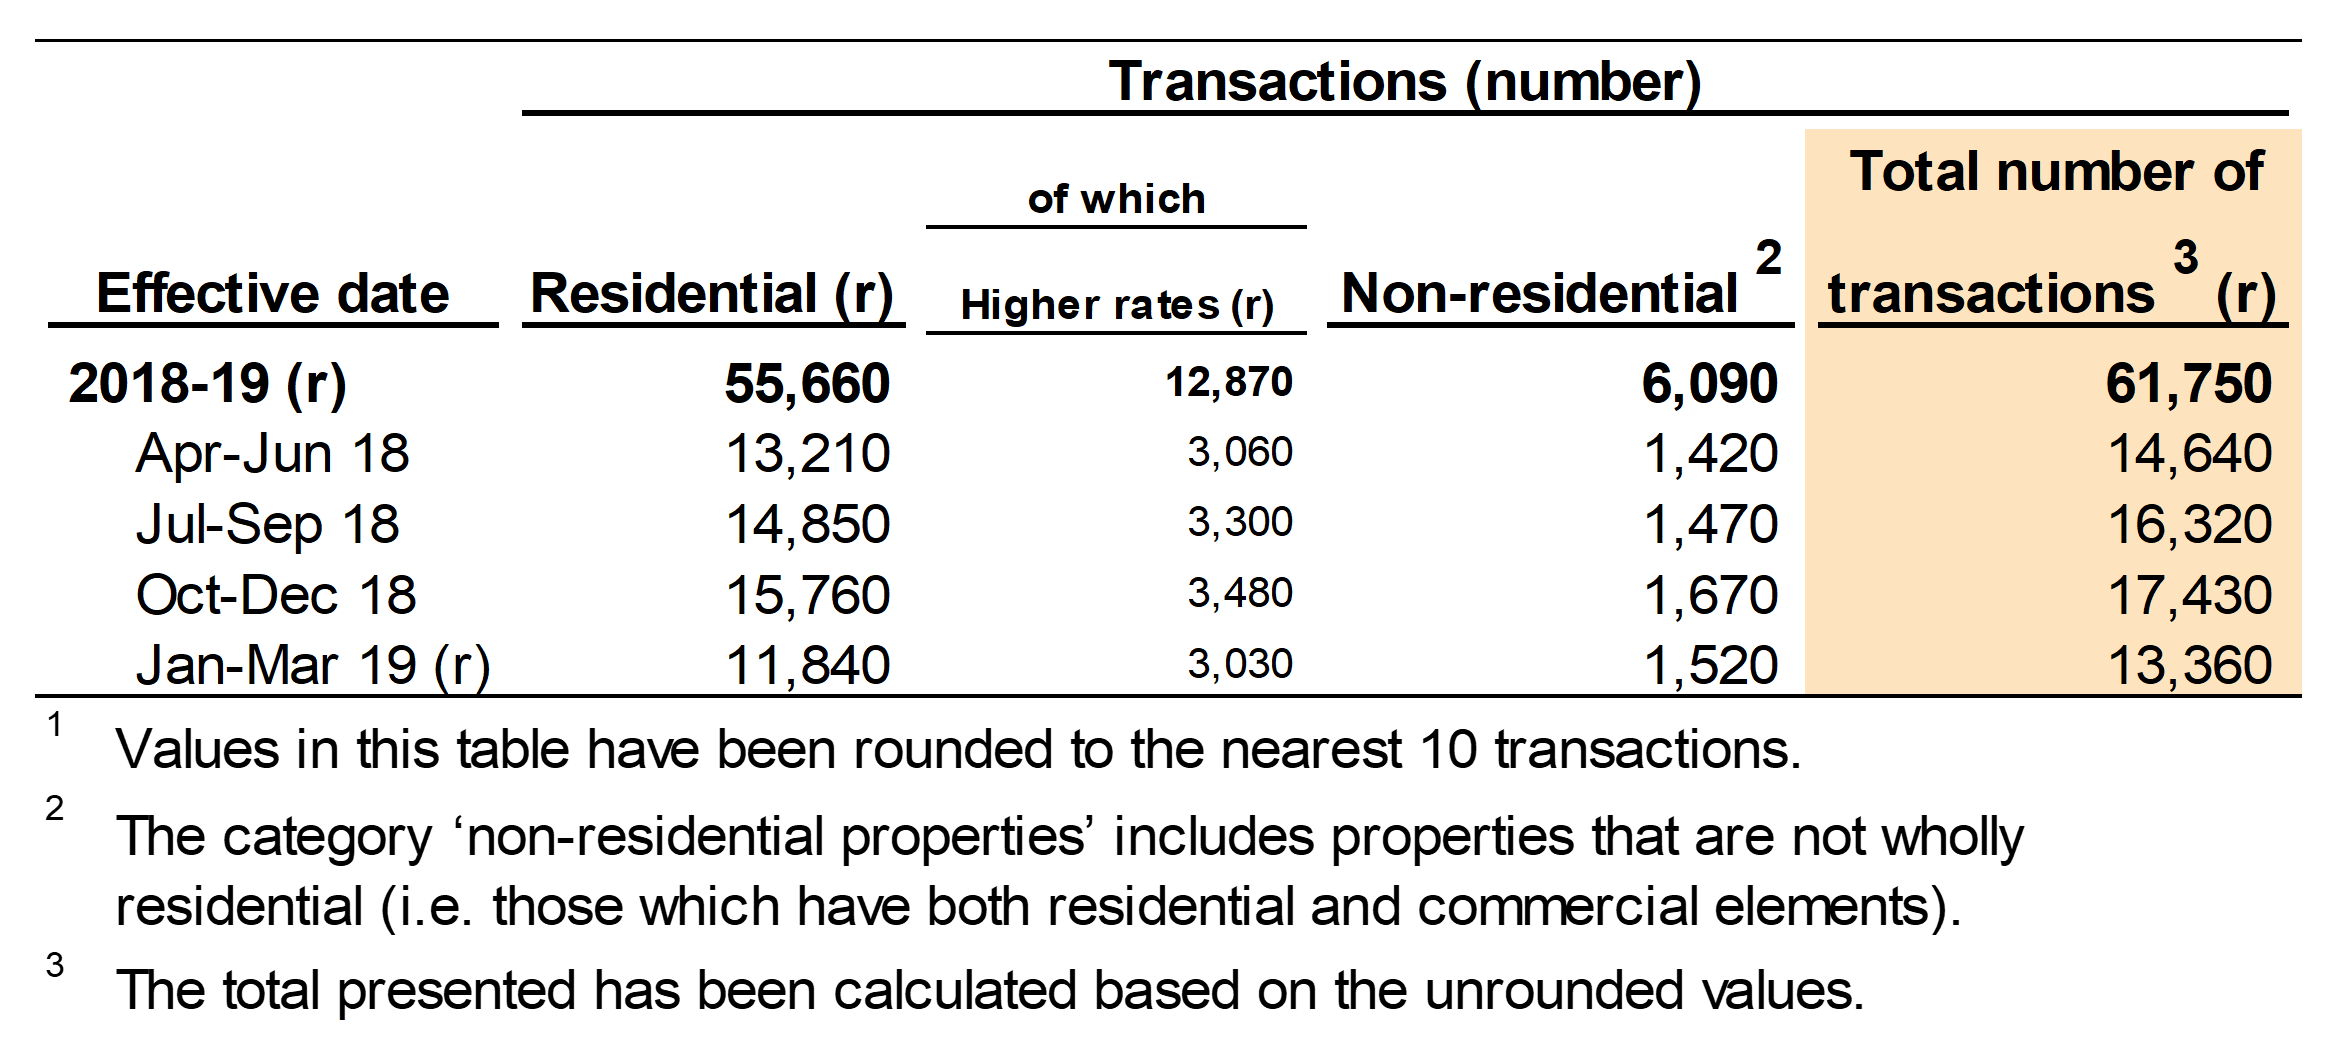 Figure 2.1 shows the number of reported notifiable transactions, by the quarter and year in which they were effective. Figure 2.1 also shows a breakdown for residential and non-residential transactions.